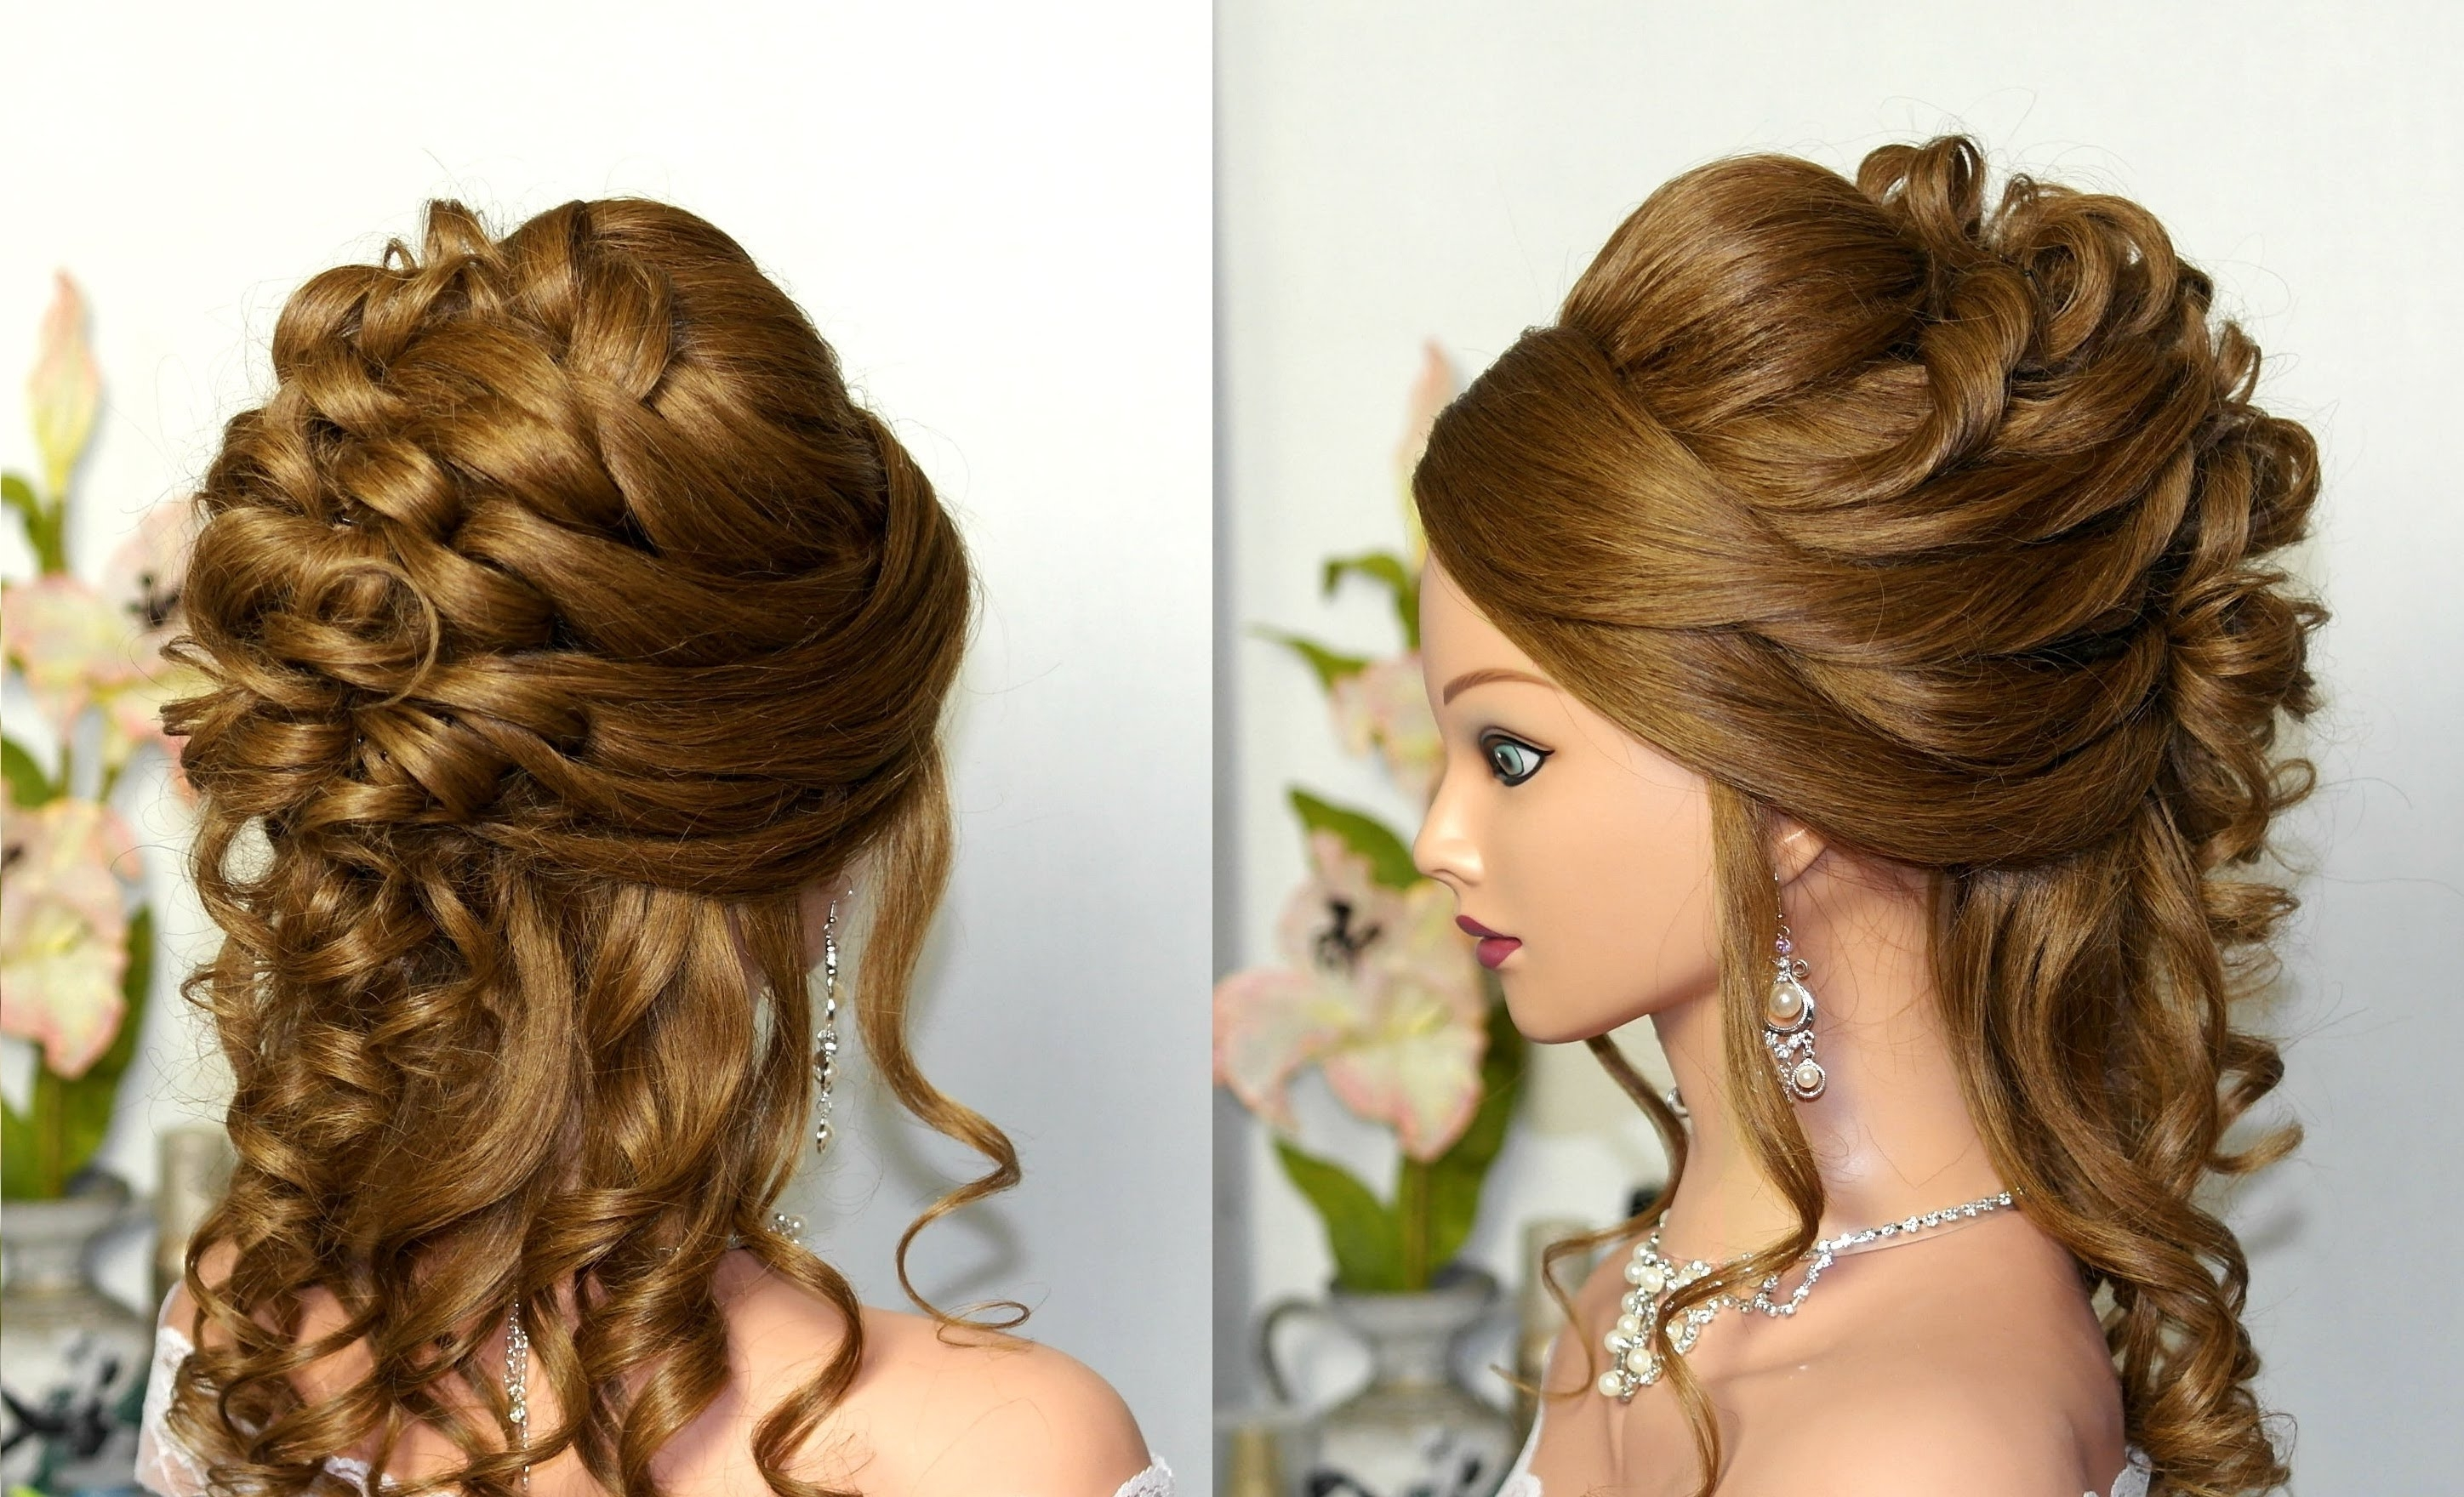 Newest Wedding Hairstyles For Long Curly Hair Pertaining To Curly Wedding Prom Hairstyle For Long Hair (View 3 of 15)